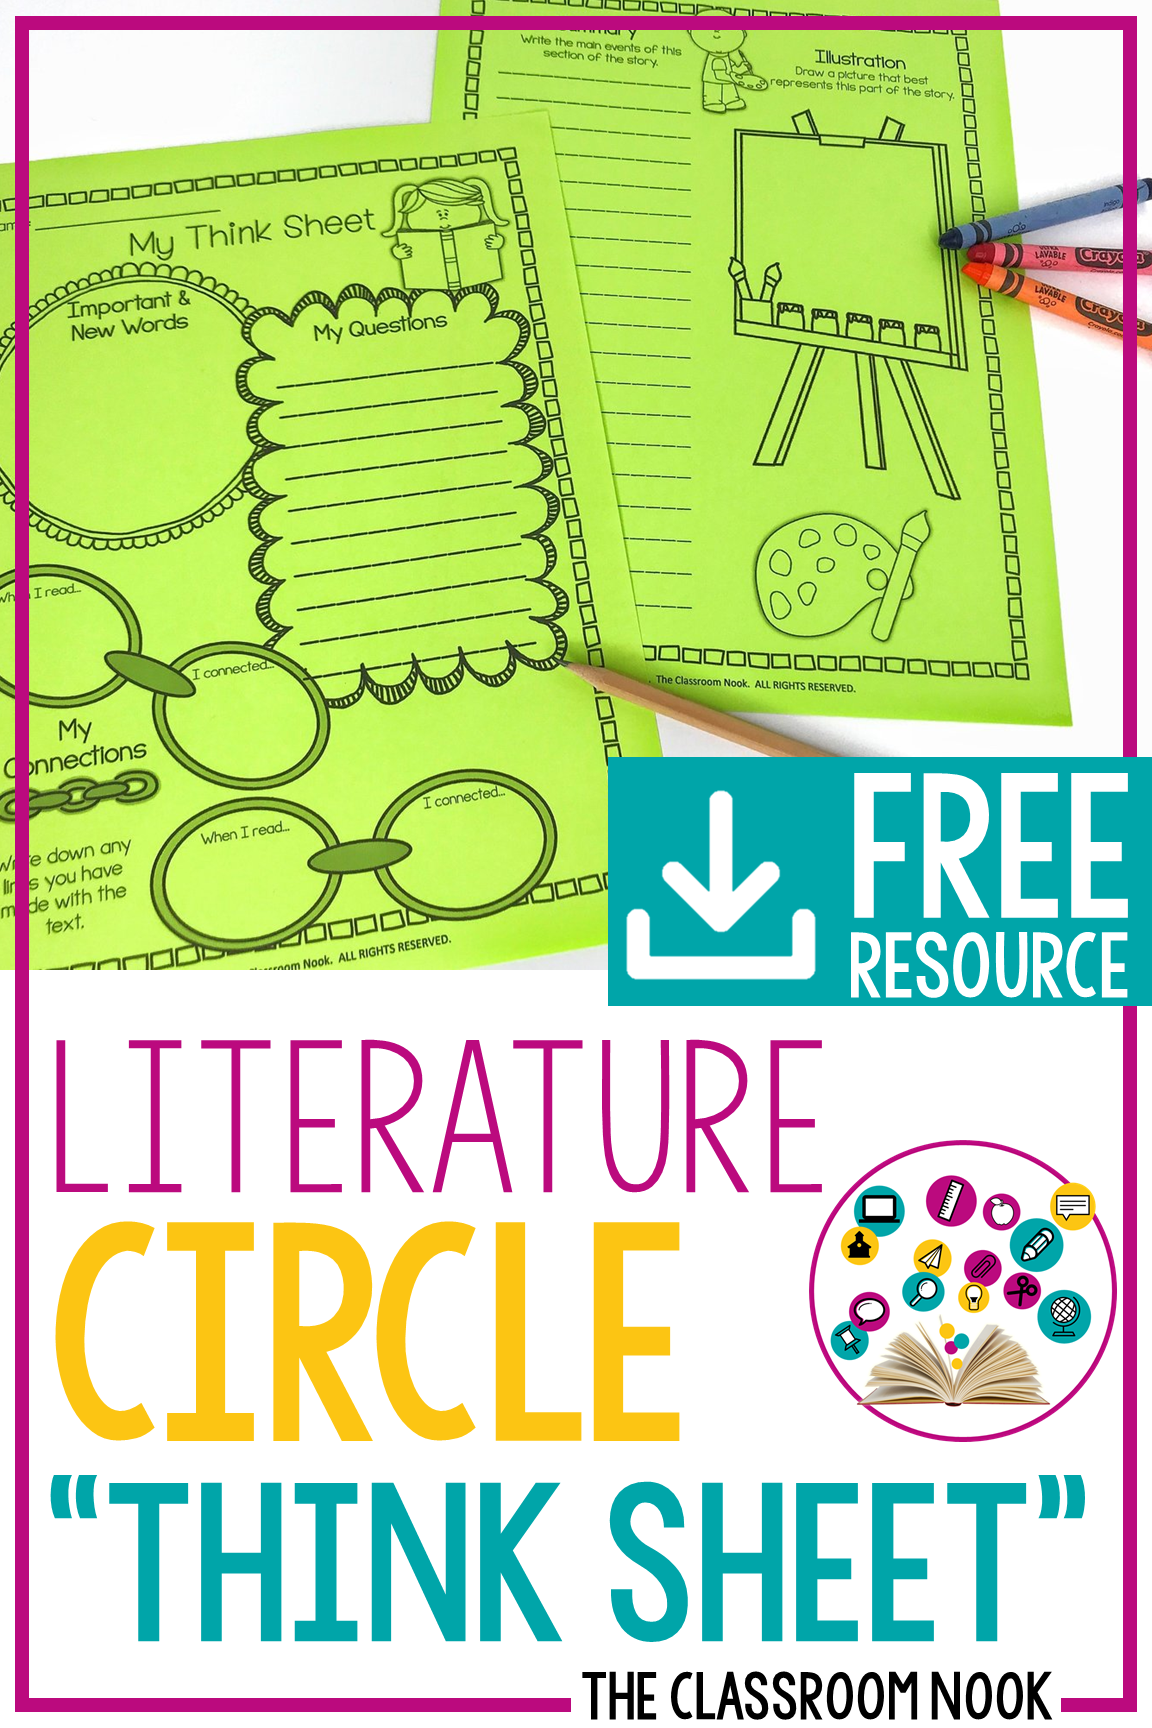 Using Literature Circles In The Upper Elementary Classroom